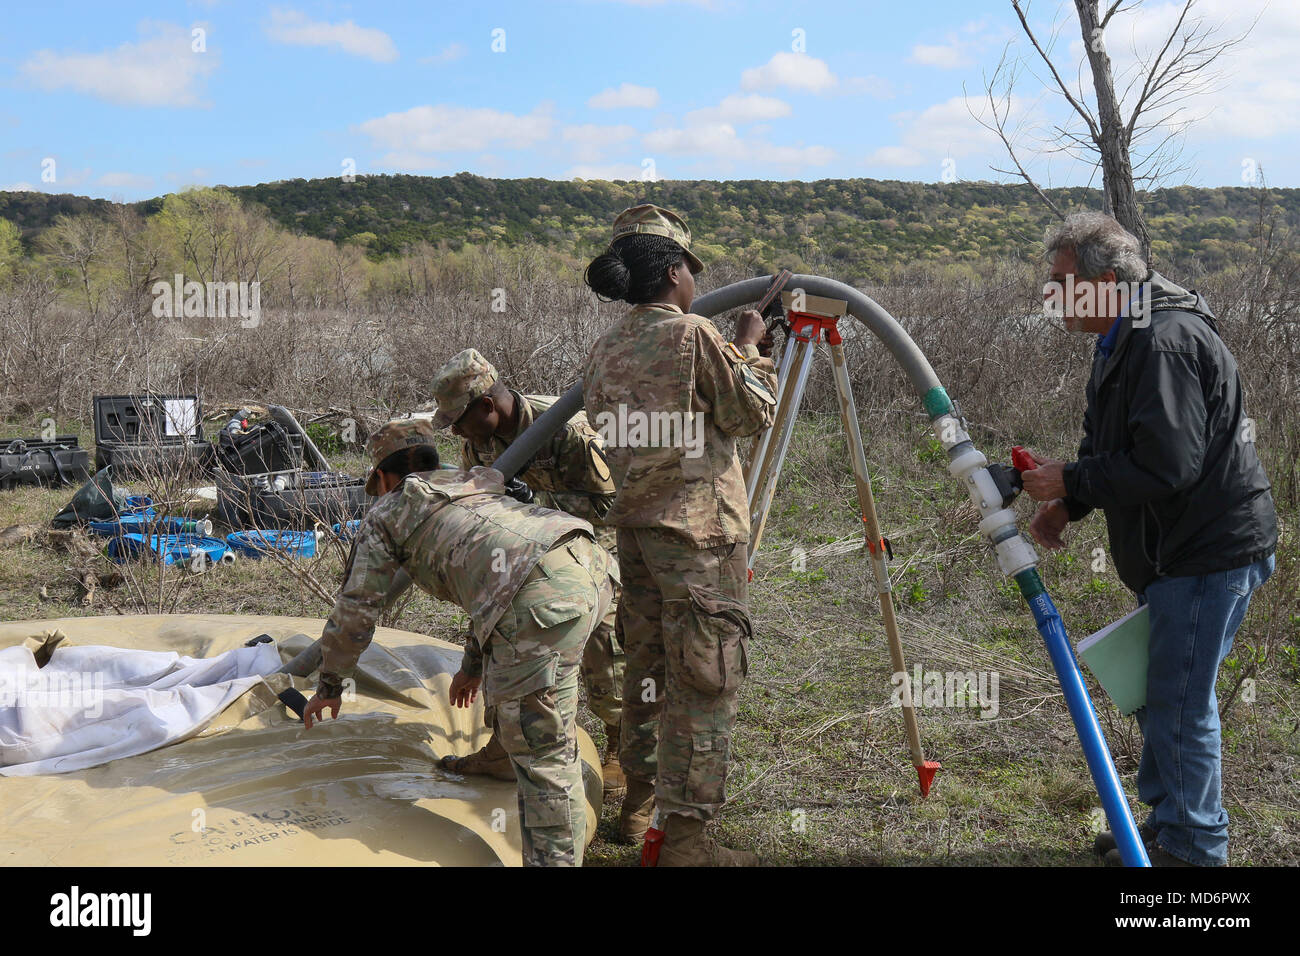 Soldiers from 289th Quartermaster Company (289th QM Co.), 553D Combat Sustainment Support Battalion, 1st Cavalry Division Sustainment Brigade, set-up the Tactical Water Purification System (TWPS) March 22 as part of an exercise to validate theirs processes prior to going to Indiana to support the Defense CBRNE (Chemical, Biological, Radiological, Nuclear, and High-Yield Explosive) Reactionary Force (DCRF) mission in June. (Photo by SFC LaSonya Morales, 1st Cavalry Division Sustainment Brigade) - Stock Image